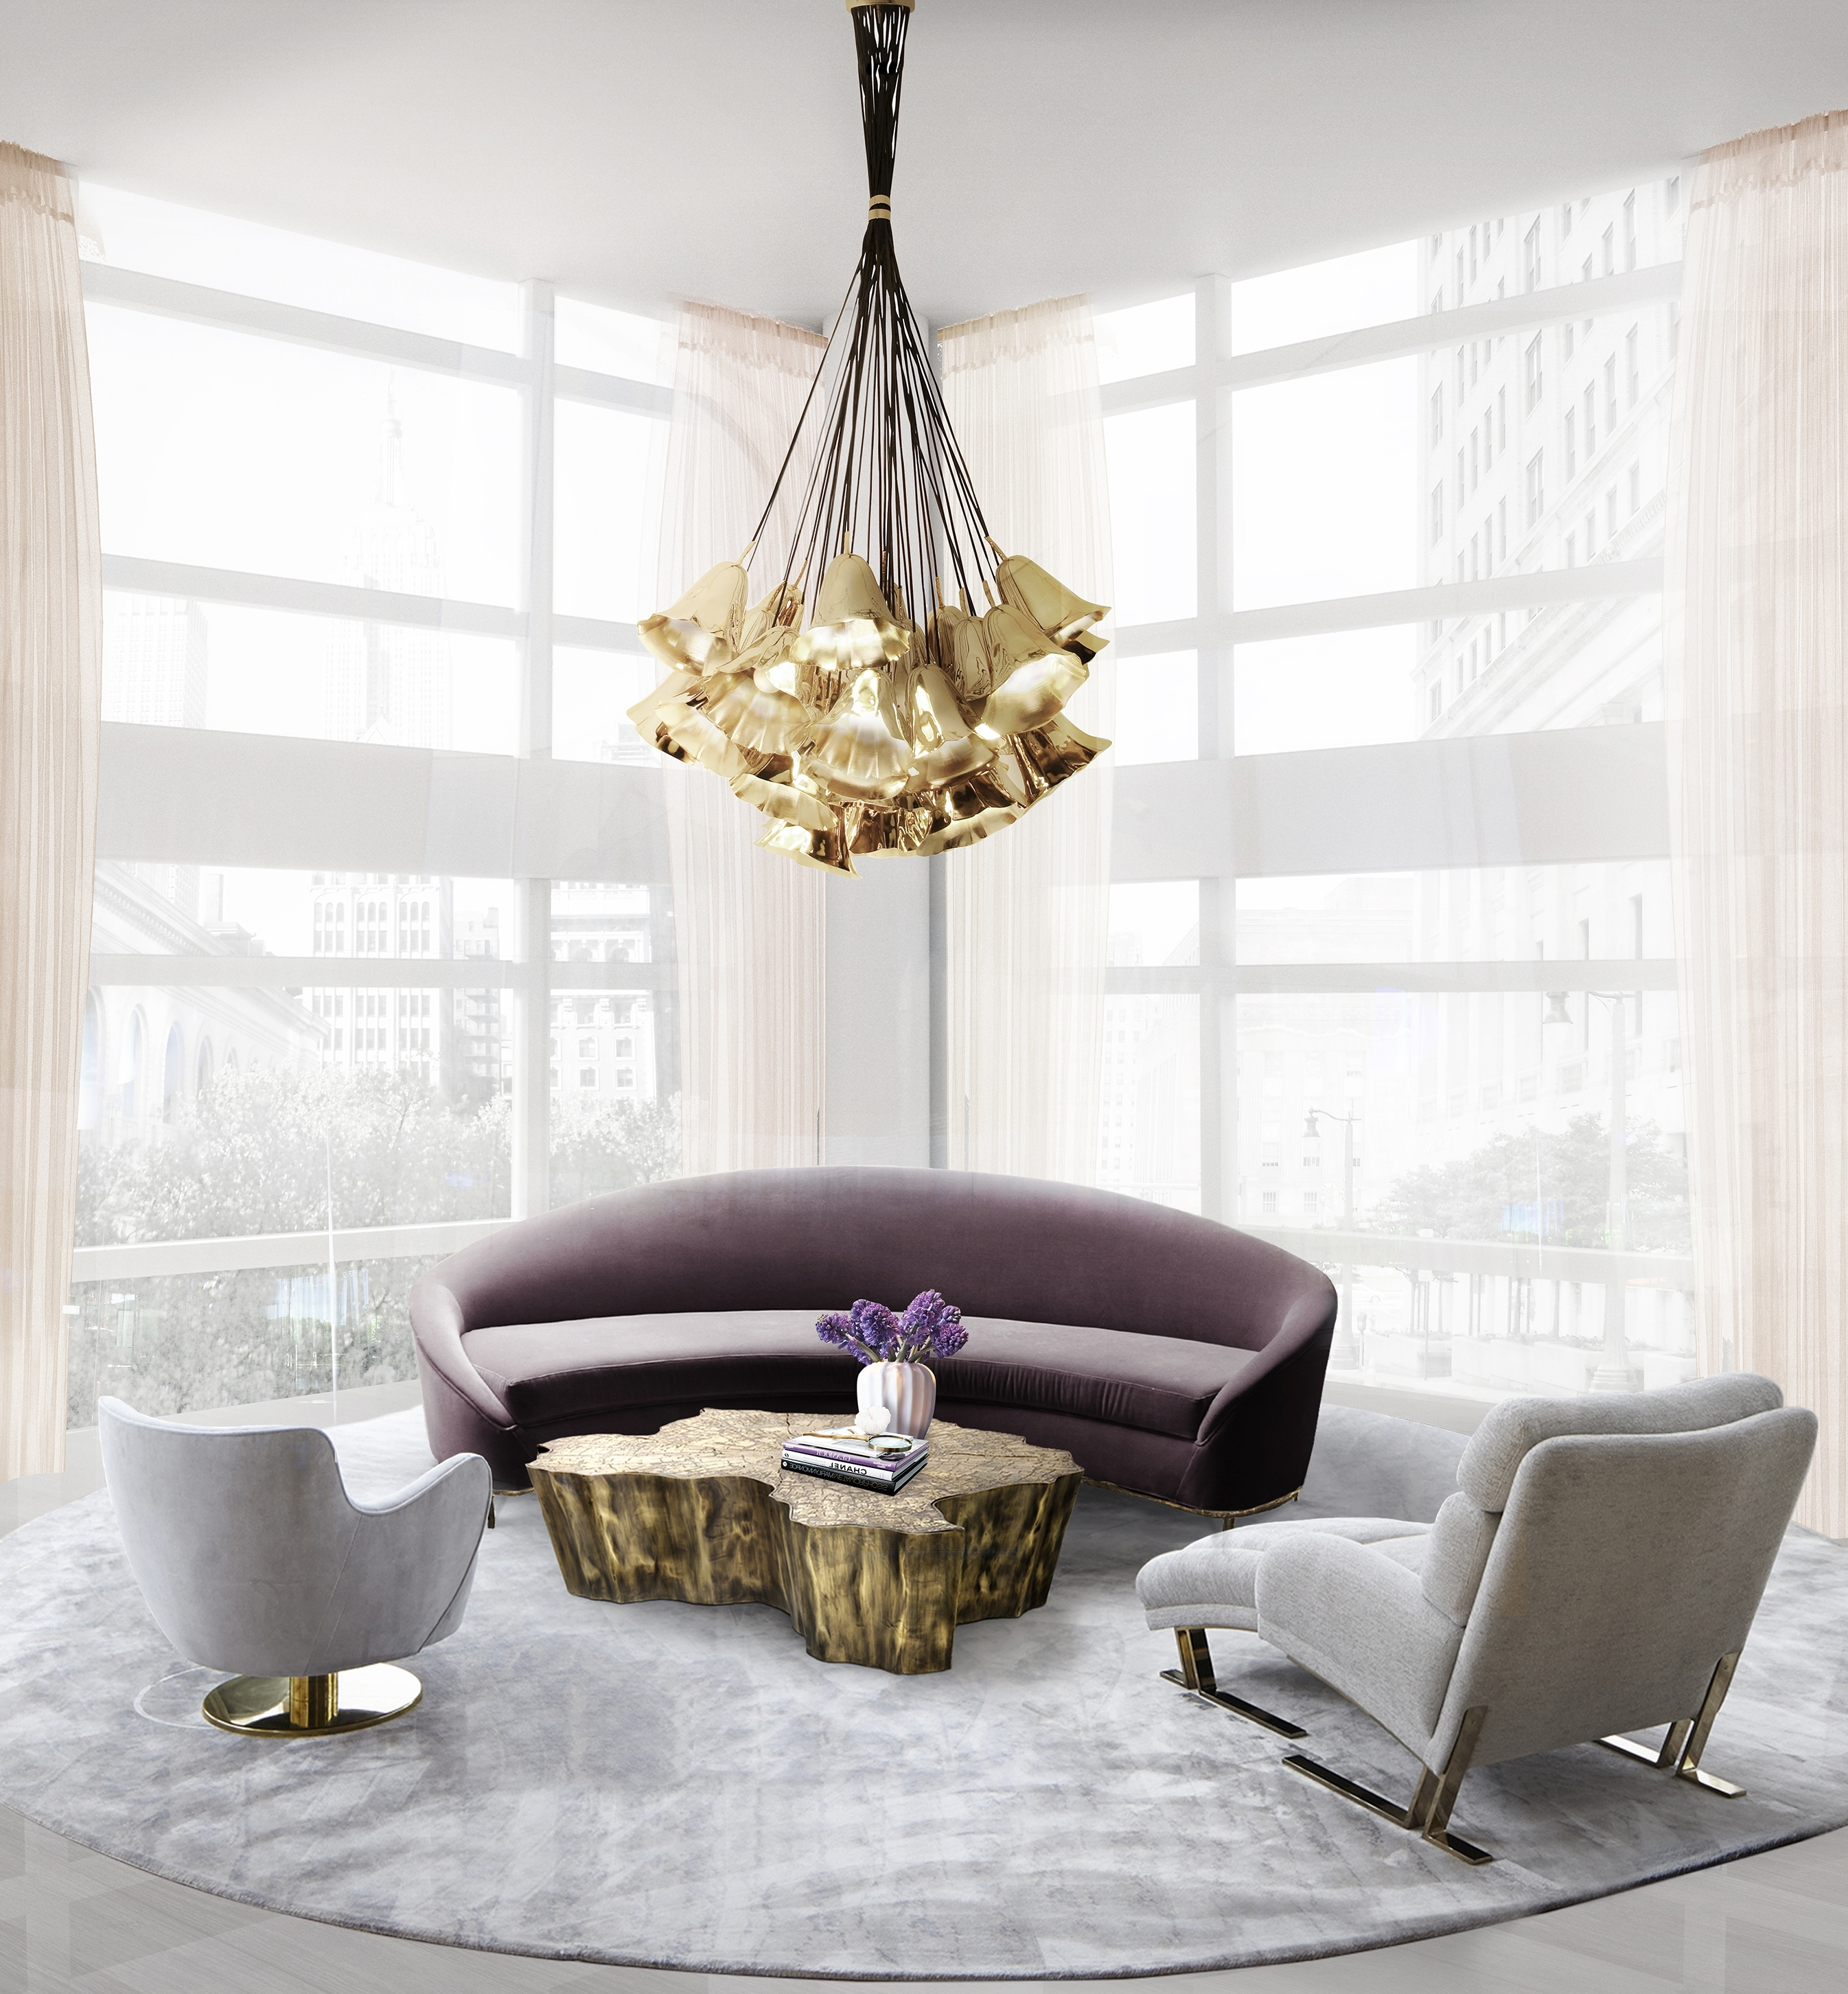 Best And Newest 8 Decorating Ideas To Improve Your Living Room Design Within Luxury Living Room Table Lamps (View 2 of 15)